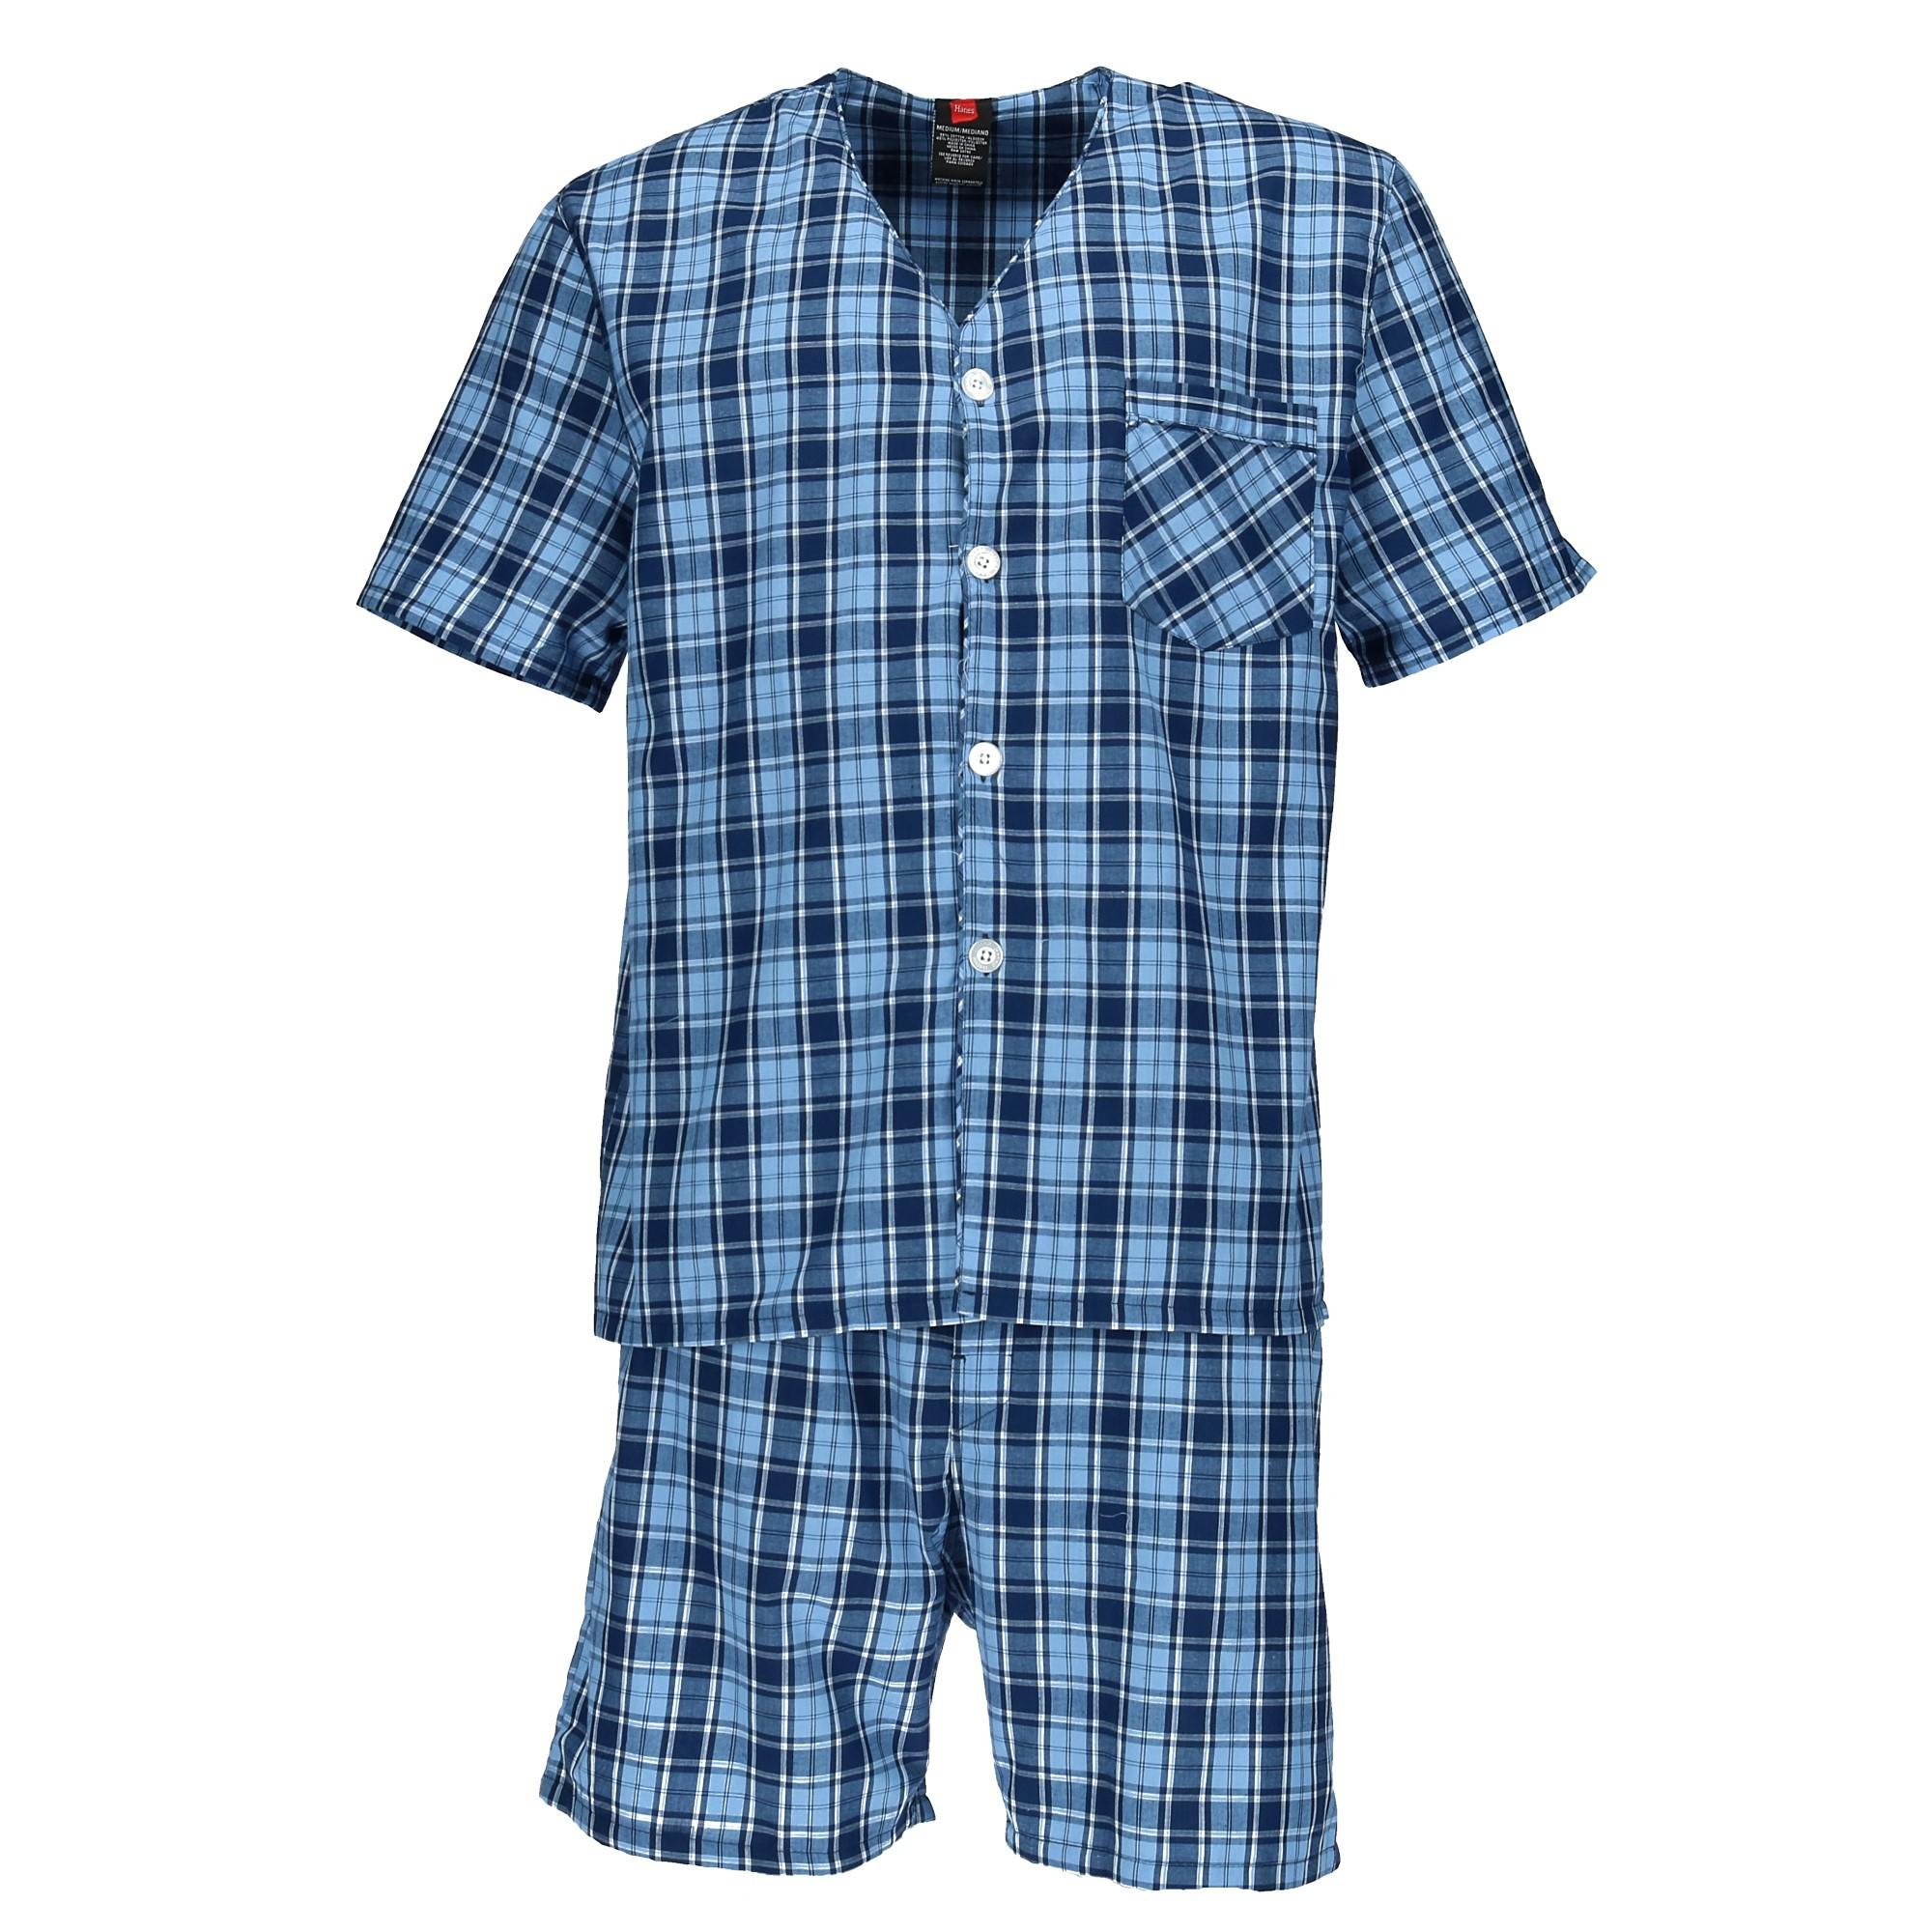 Hanes Men's Short Sleeve Short Leg Pajama Set, XL, Blue Plaid by Hanes